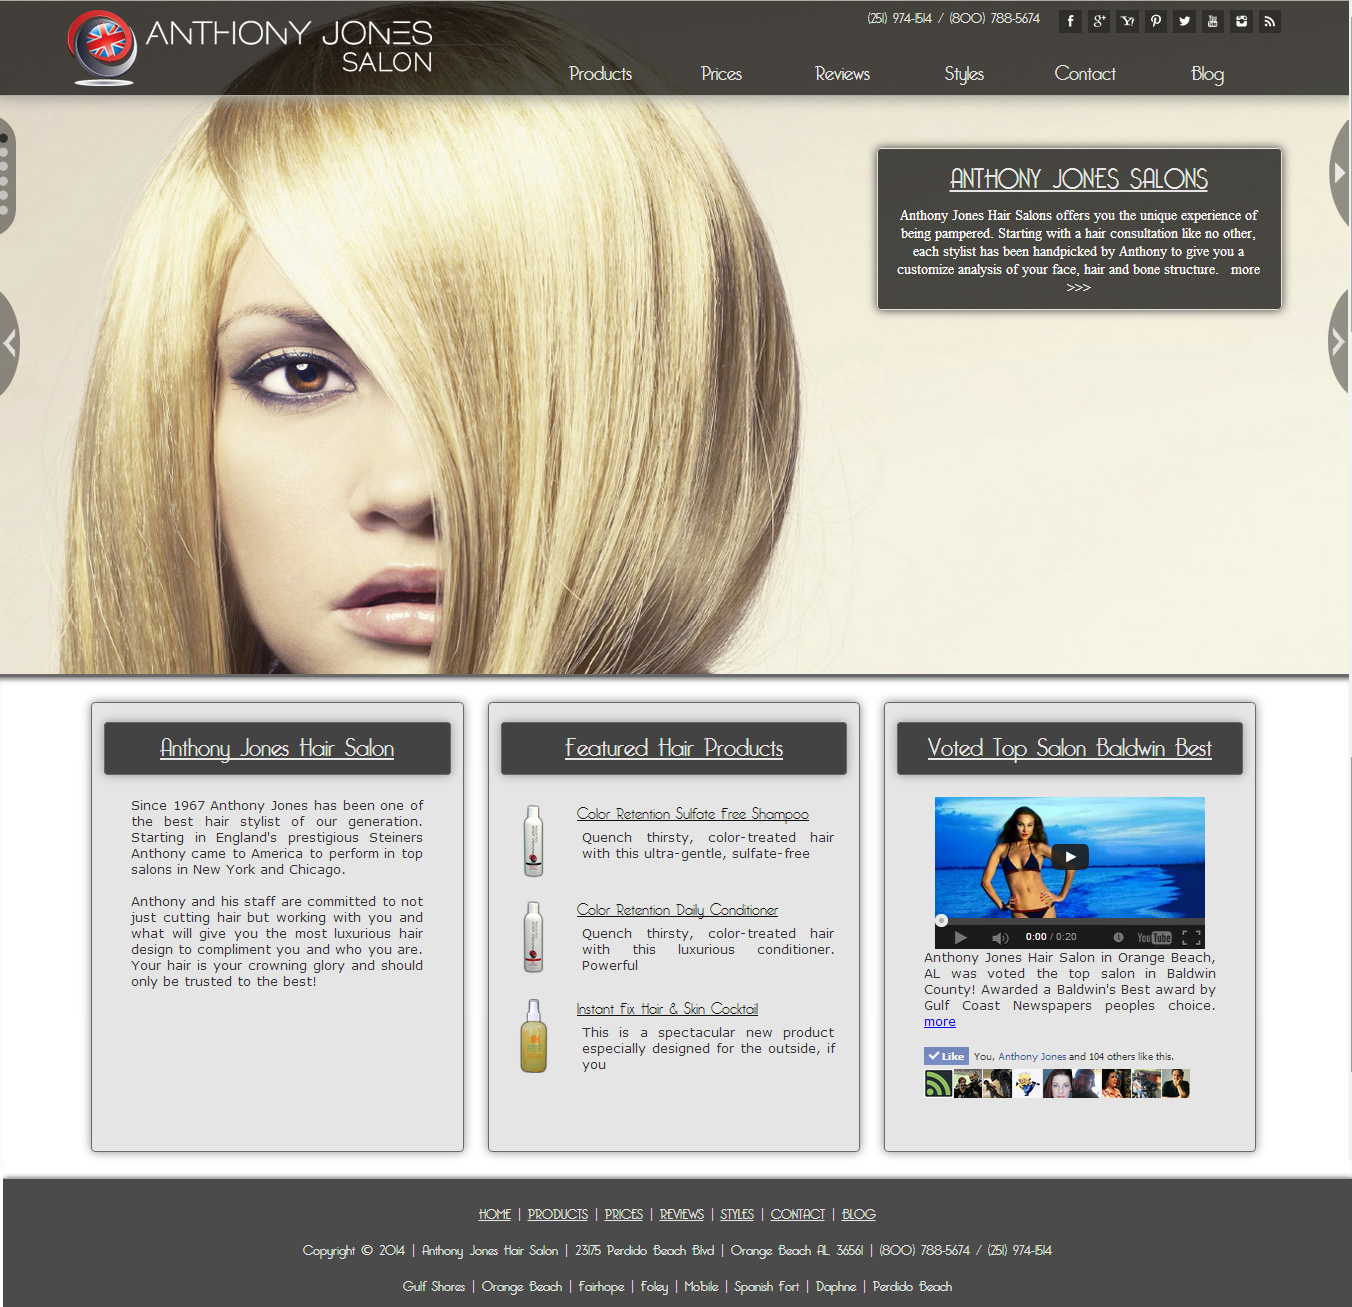 Hair Salon Website Hair Salon Website - Anthony Jones Salon